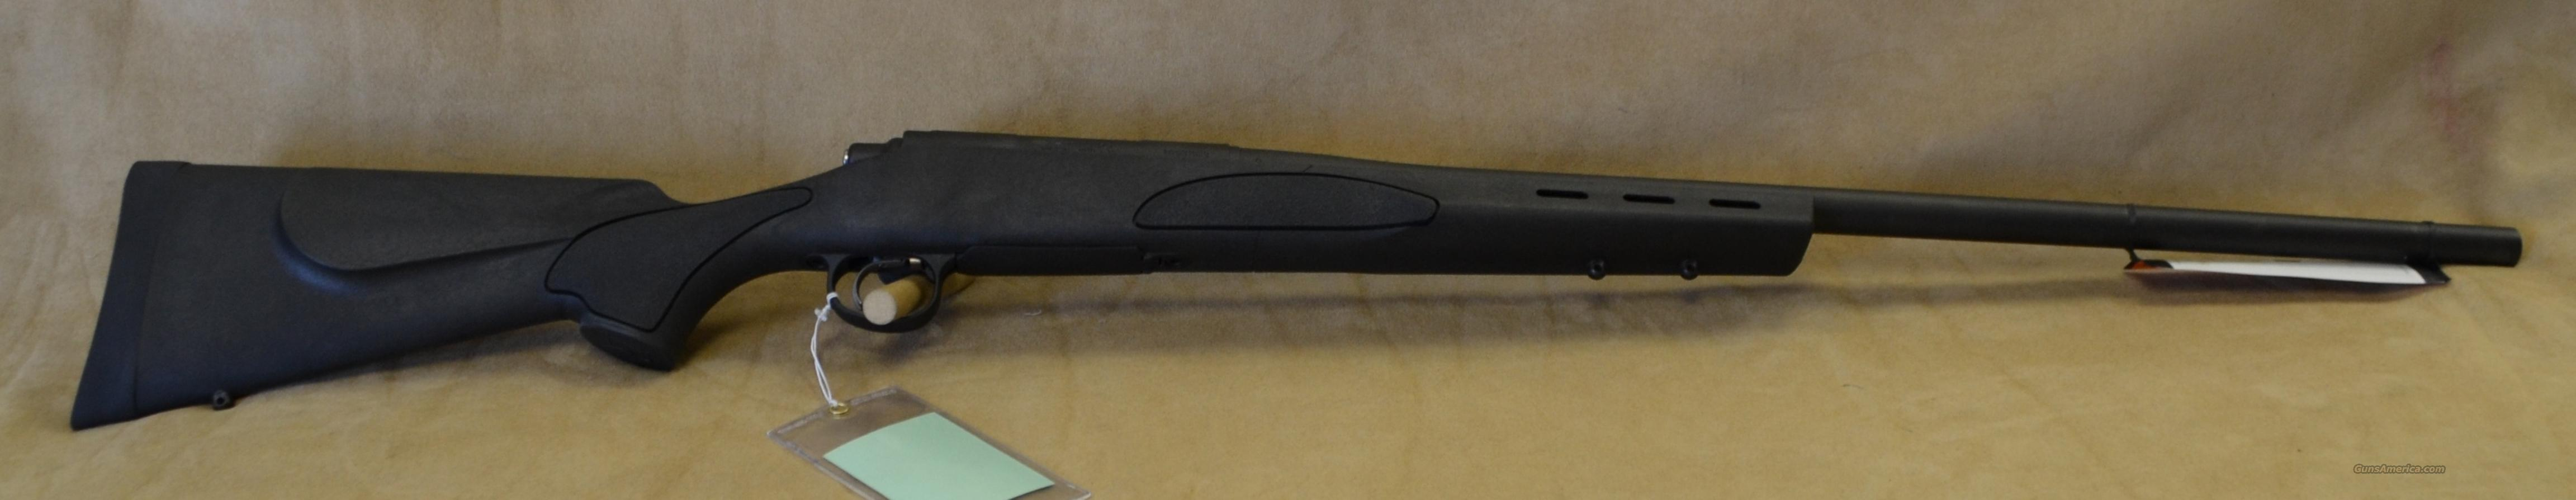 84228 Remington 700 SPS Varmint LEFT HAND - 243 Win  Guns > Rifles > Remington Rifles - Modern > Model 700 > Sporting